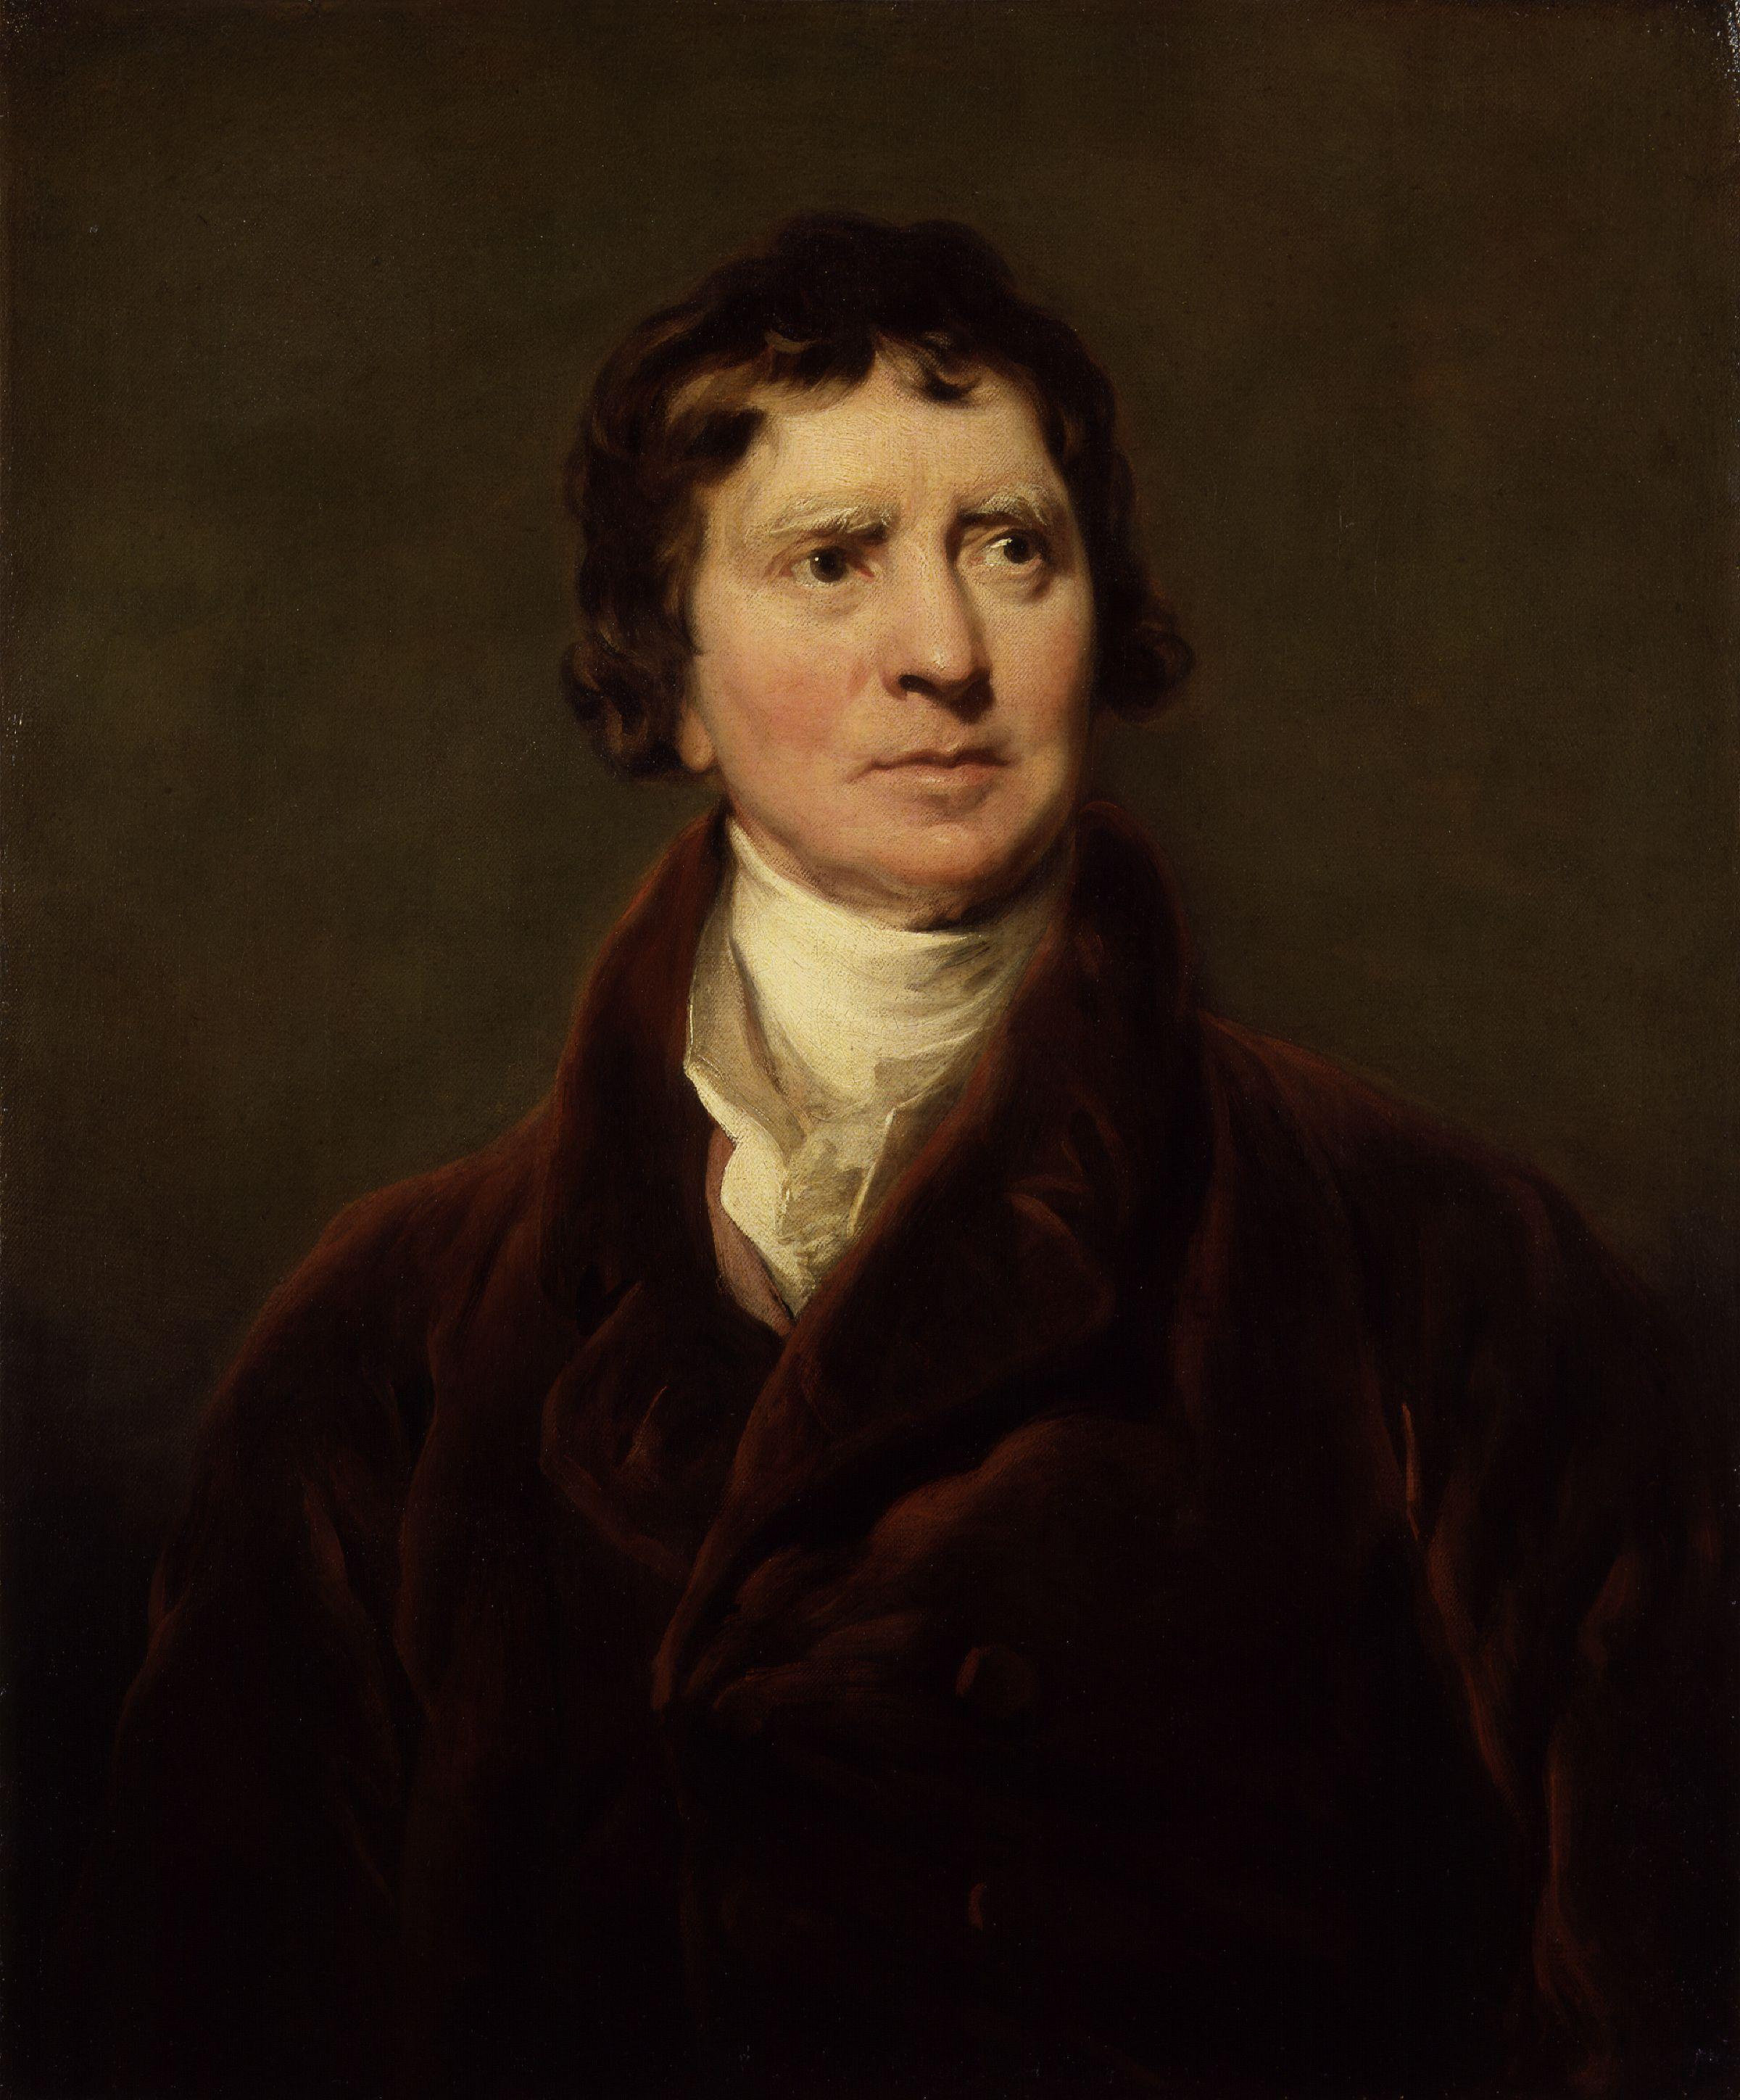 Henry Dundas, 1st Viscount Melville, by Sir Thomas Lawrence (died 1830).